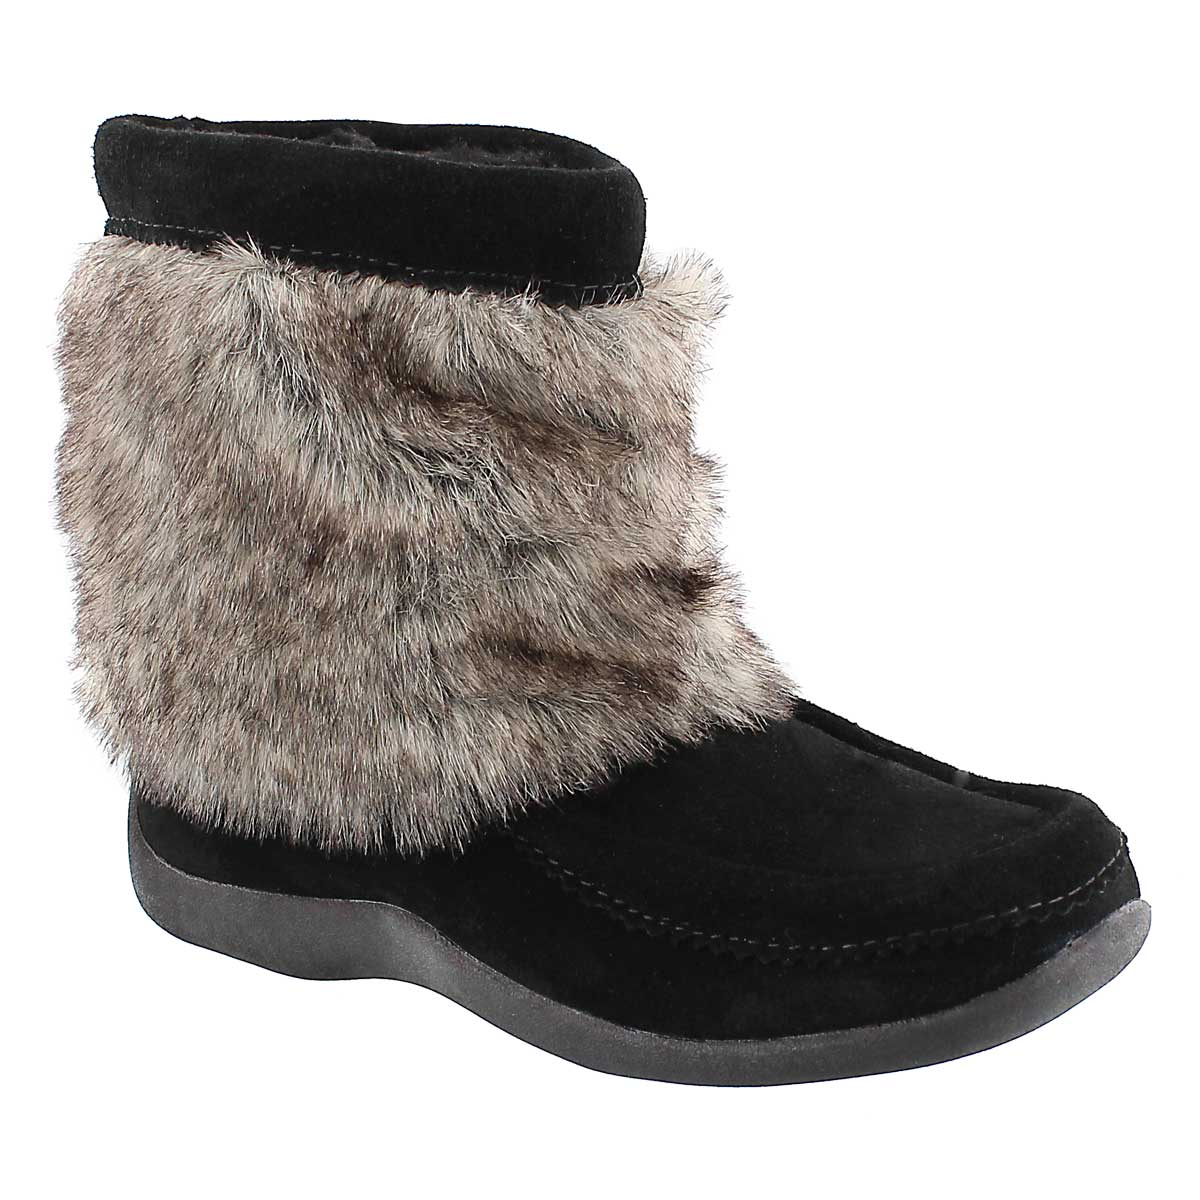 Women's CANDY LO black suede mukluks